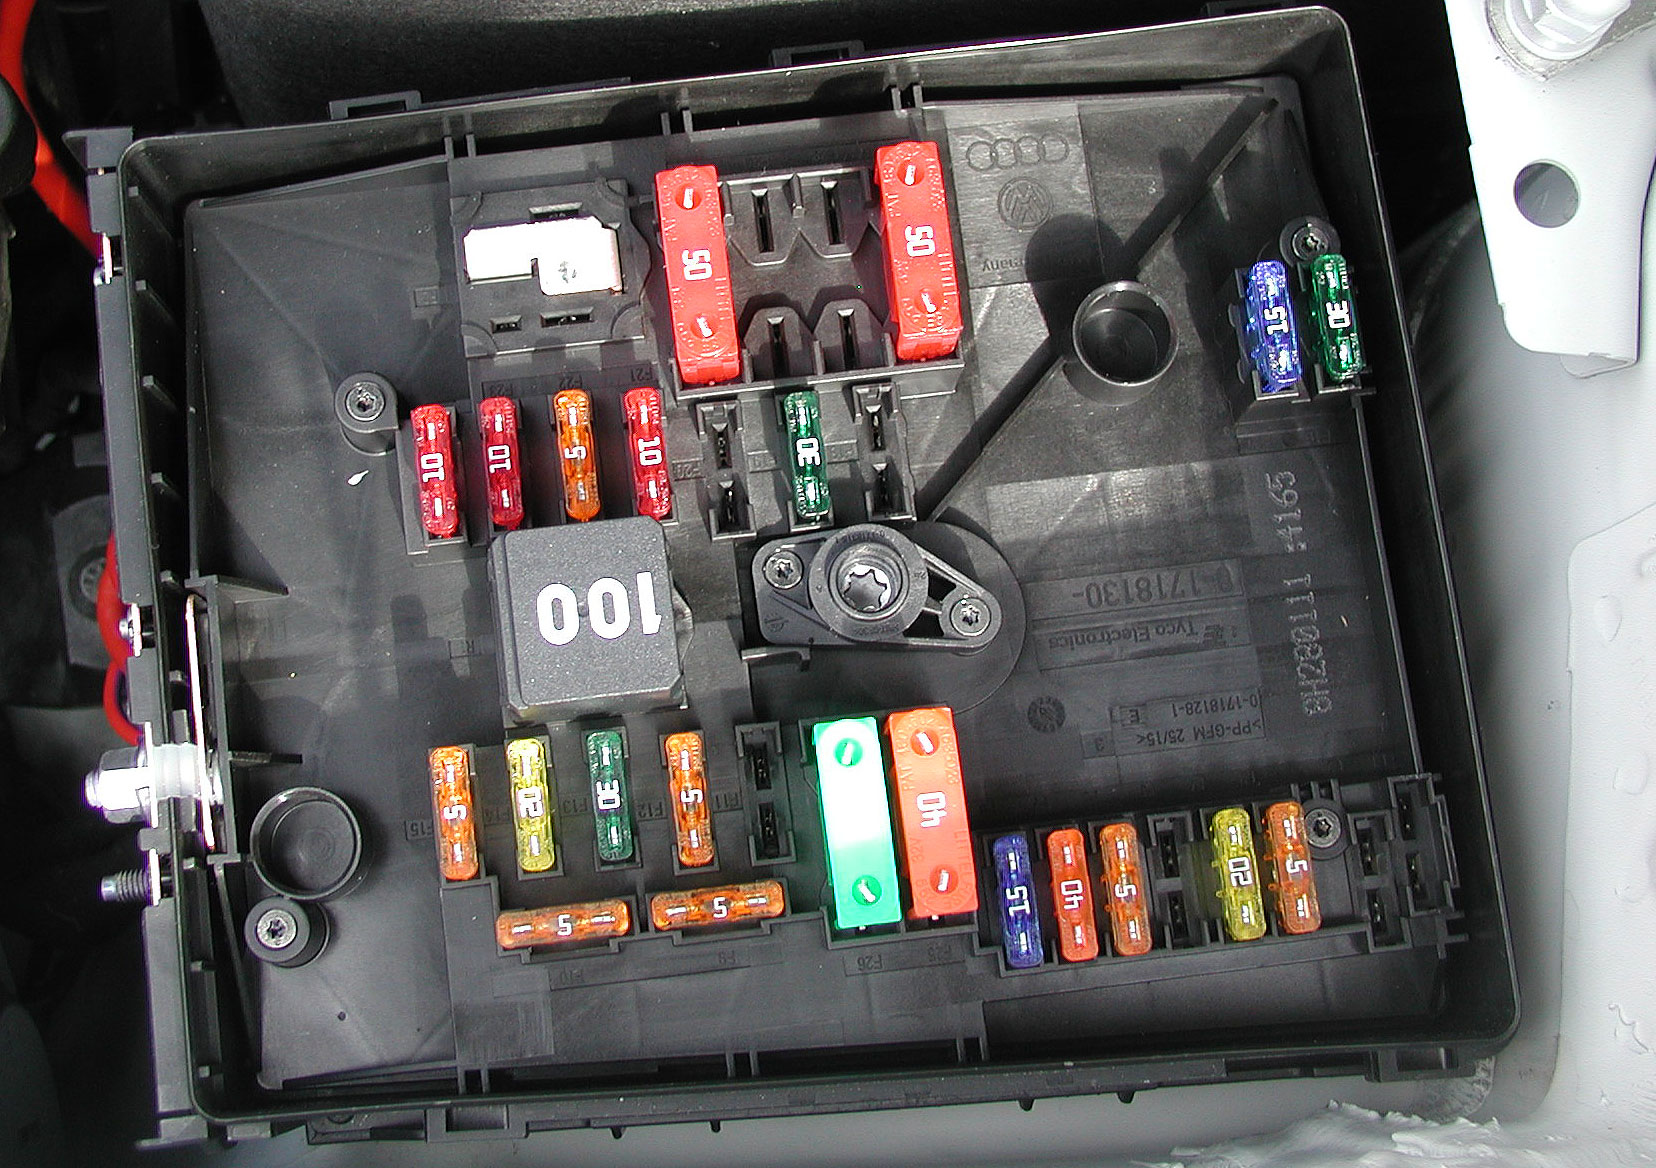 2011 Golf Tdi Fuse Box Picture Please Tdiclub Forums 2000 Expedition Interior Diagram